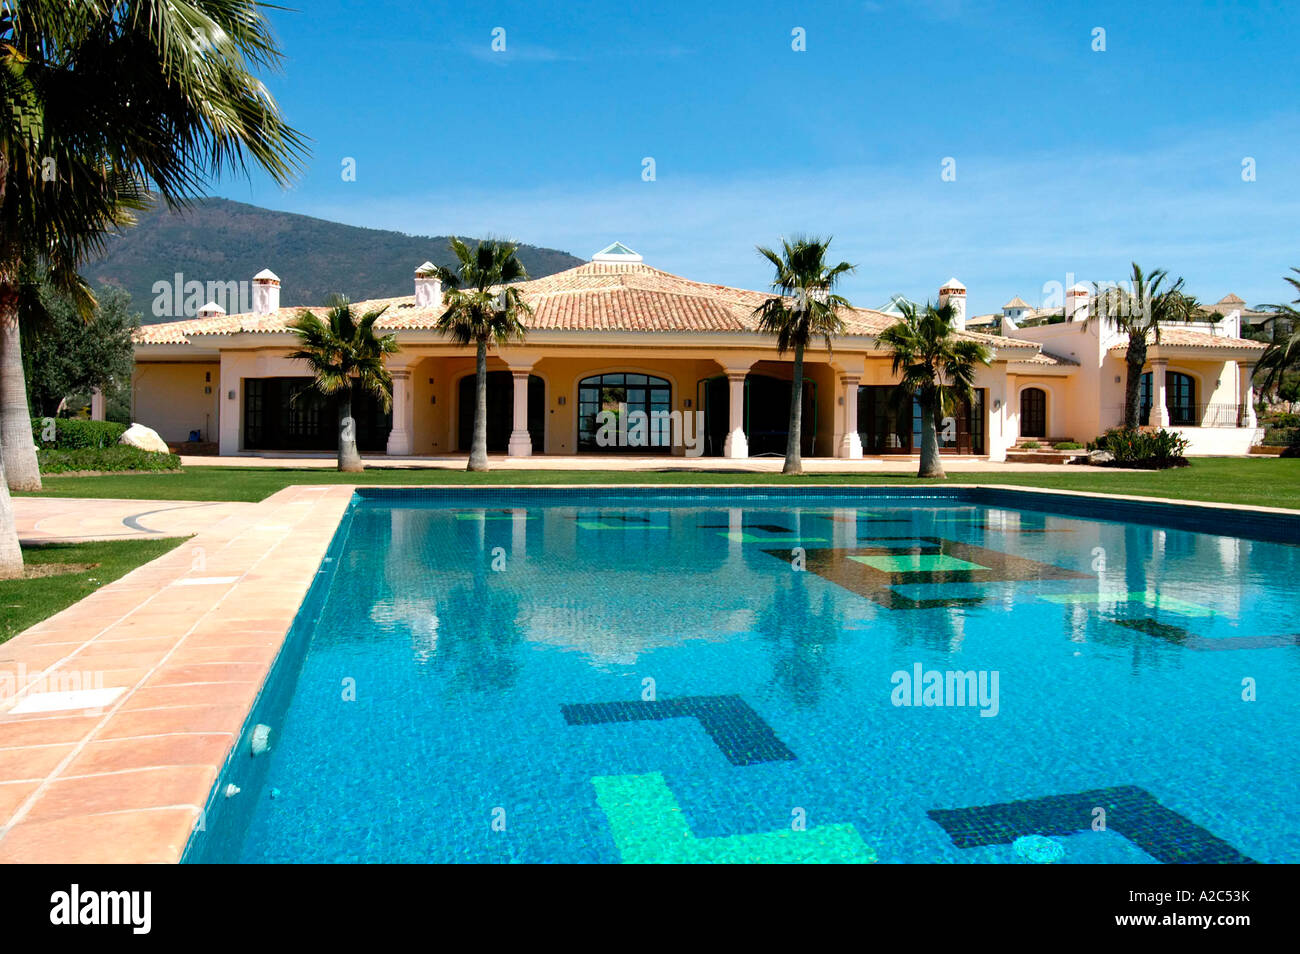 243c953ec6 An example of the luxury property for sale on the Costa del Sol Marbella  Spain